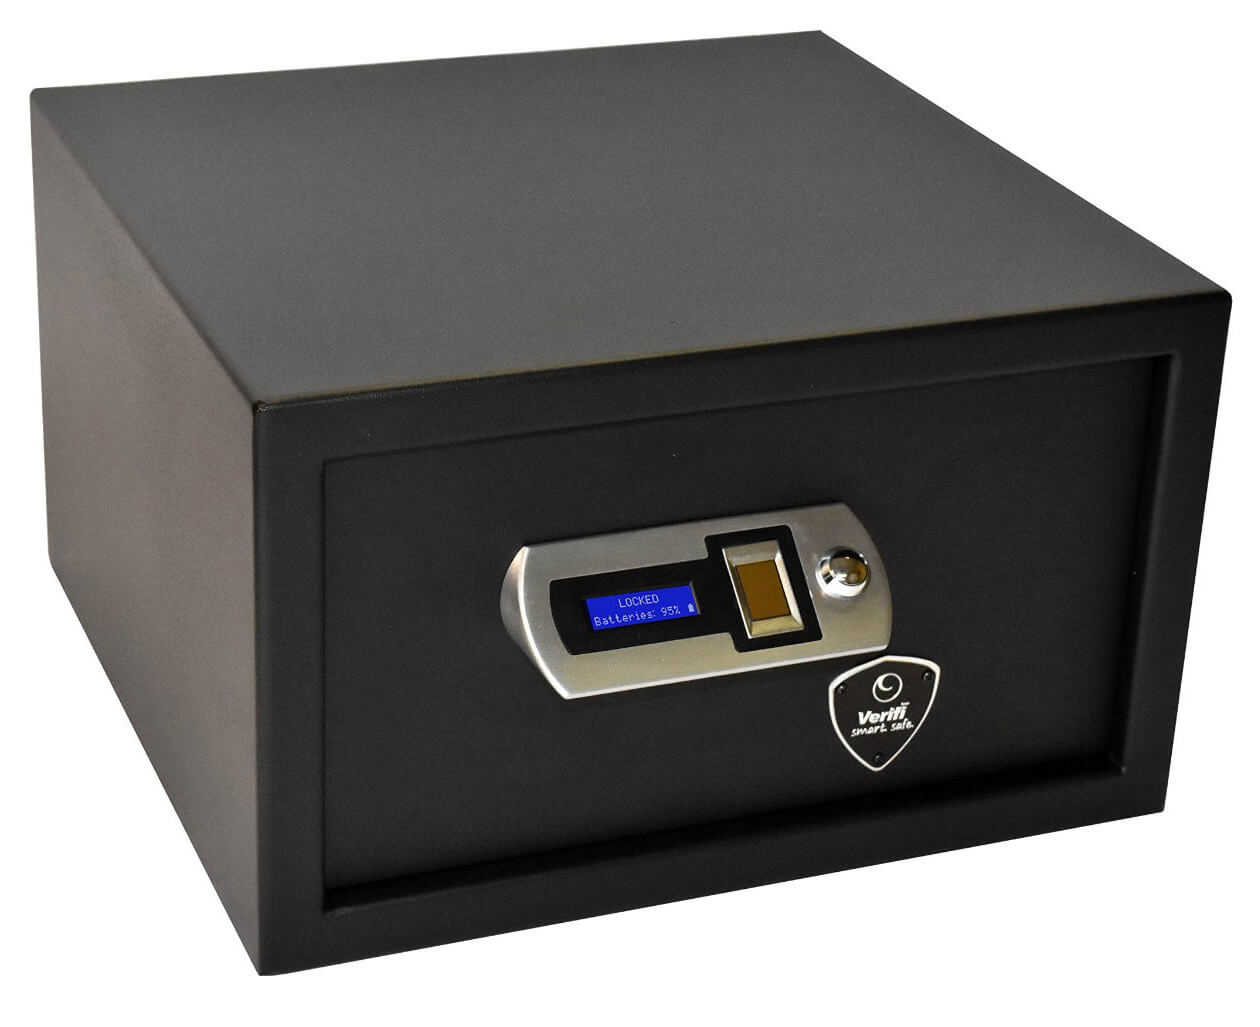 Verifi Biometric Safe with FBI Fingerprint Sensor